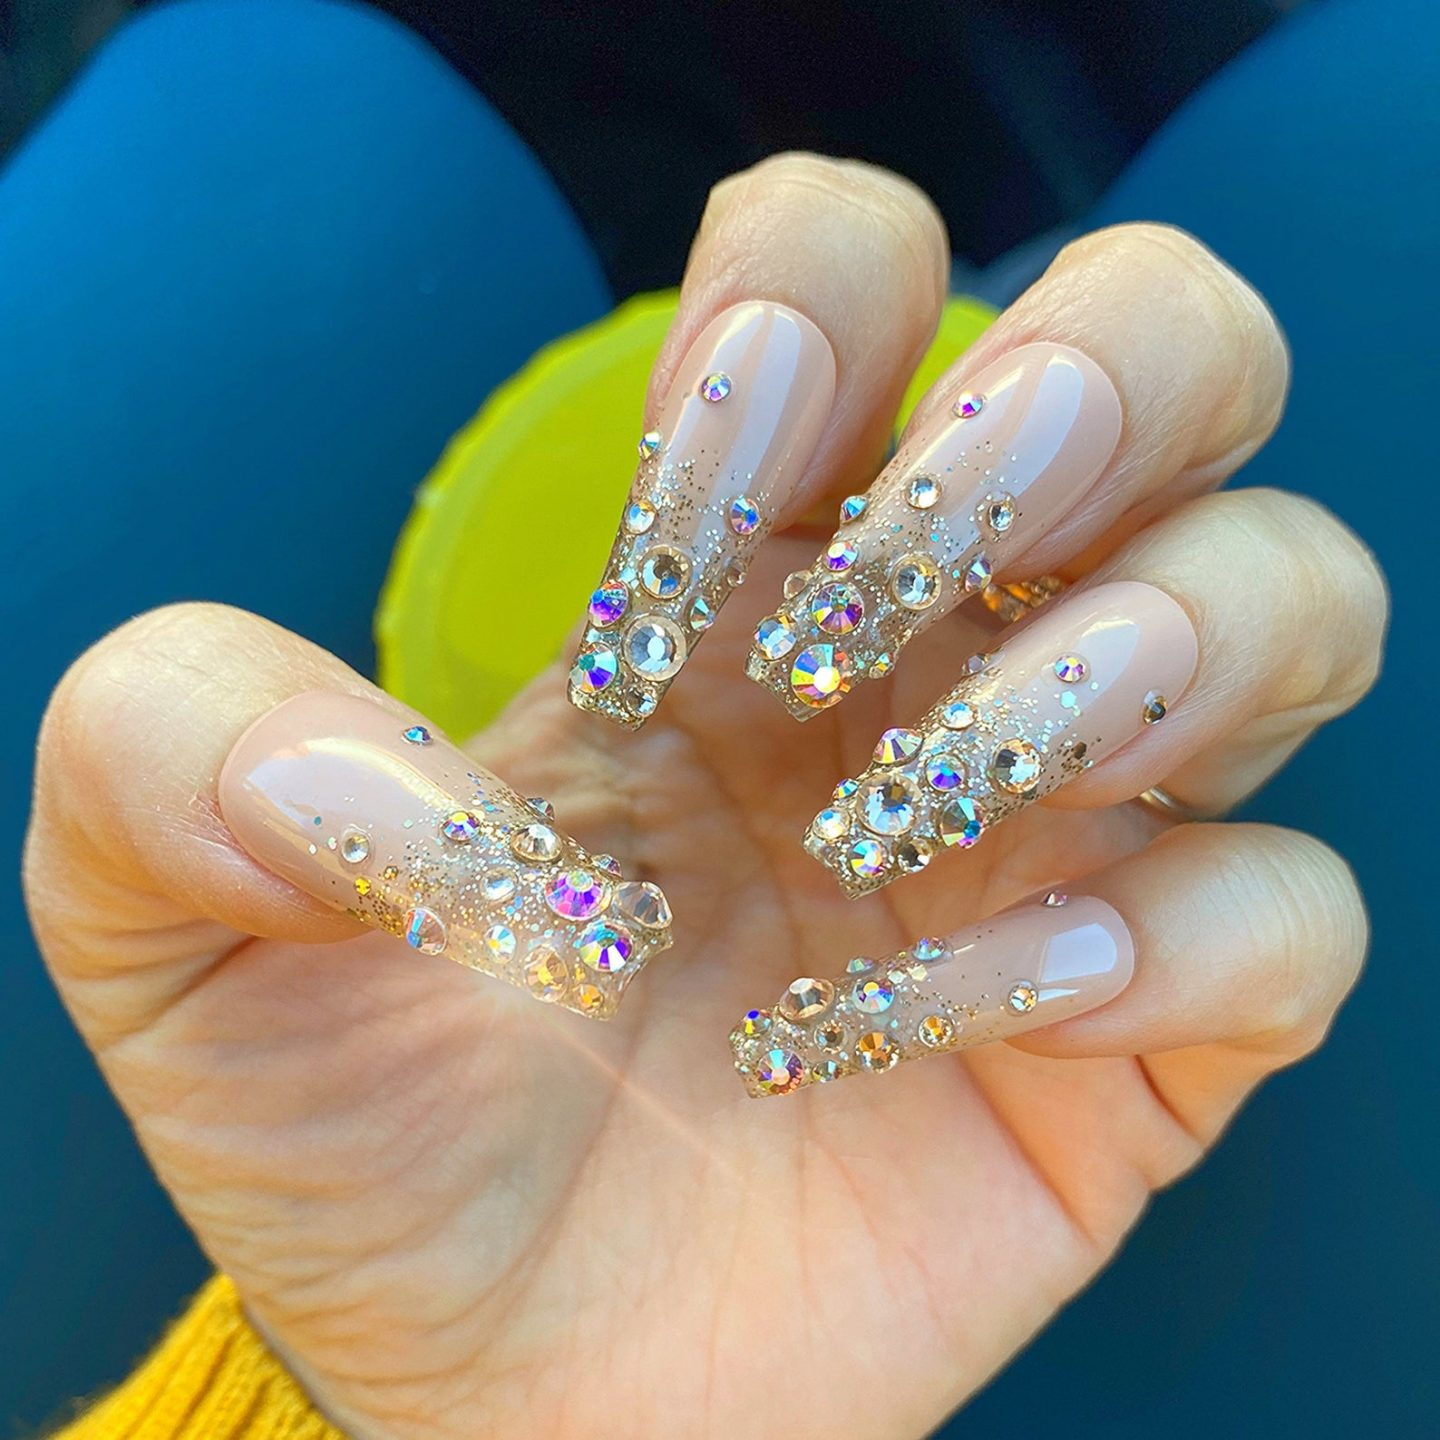 Long nude coffin nails with rhinestones and diamonds